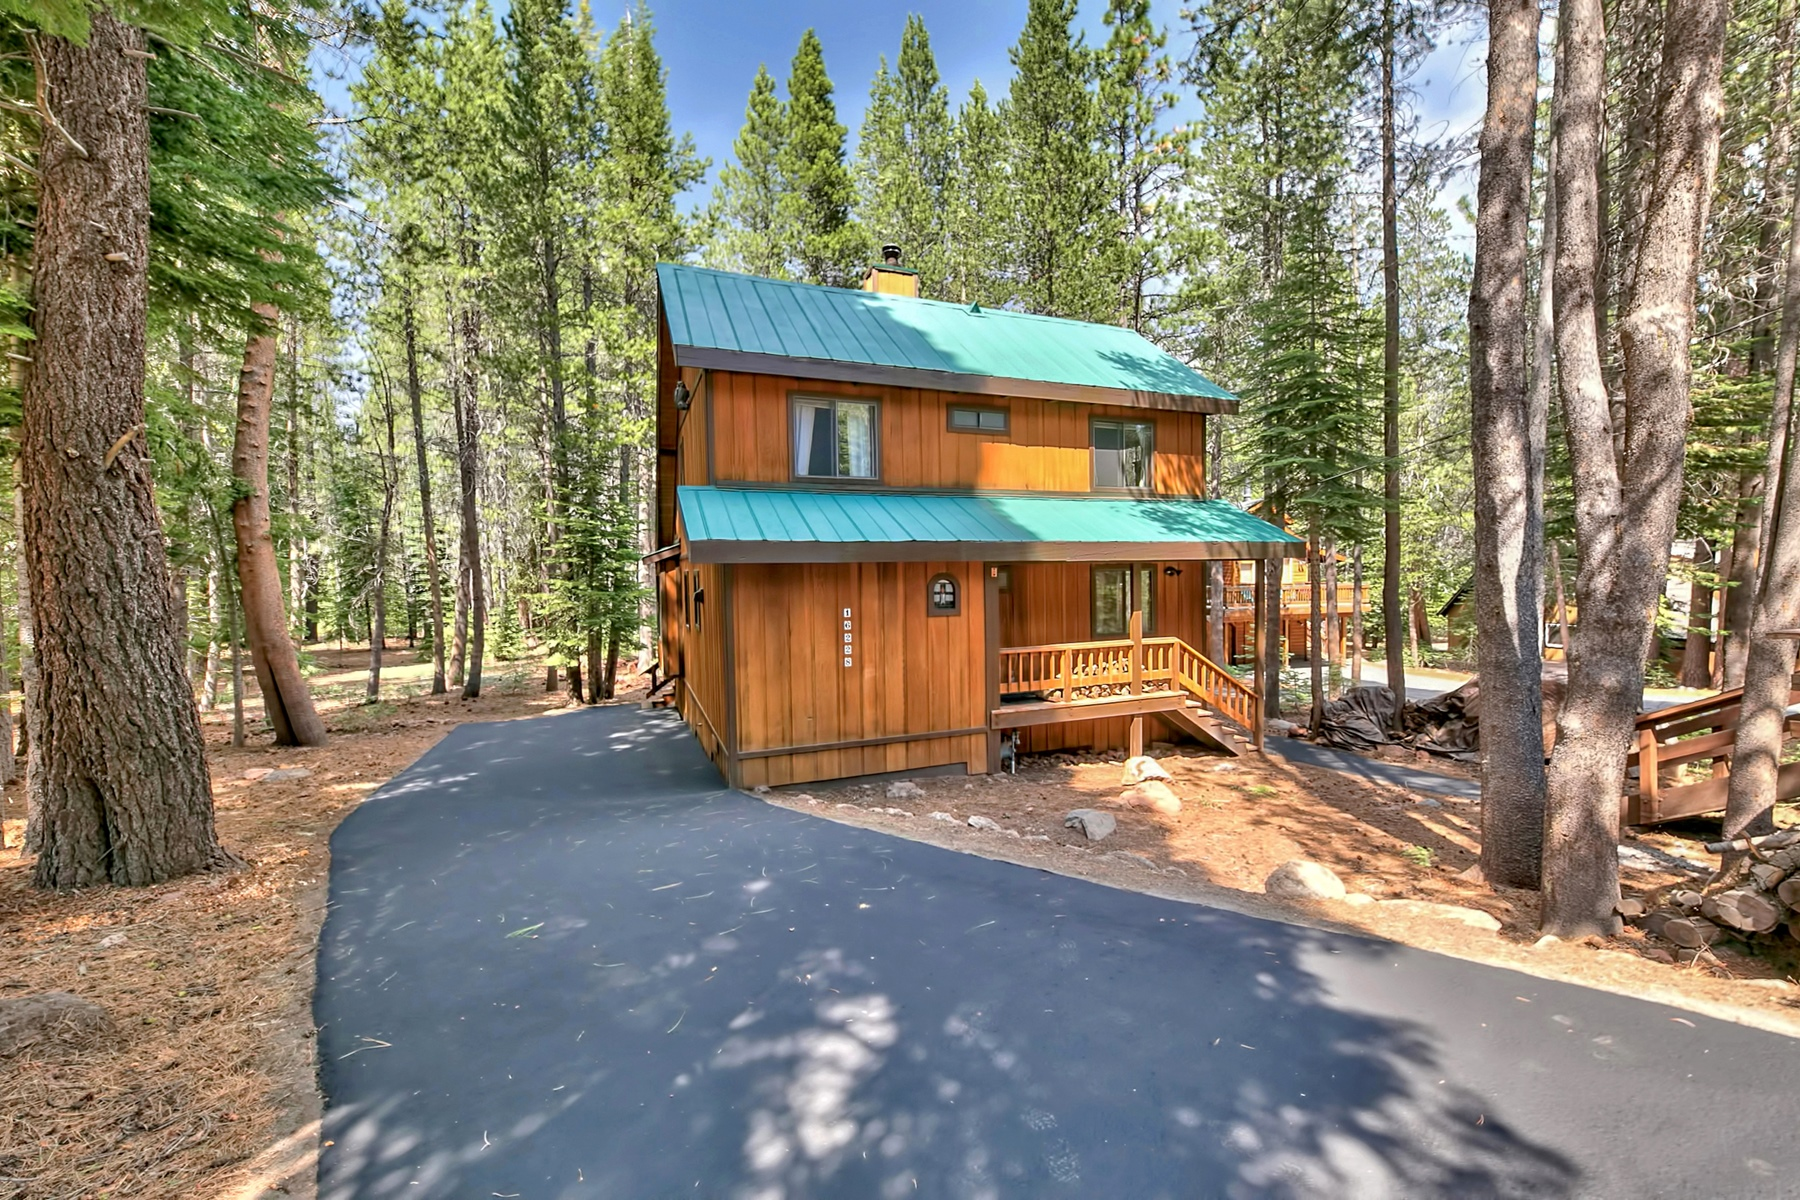 Single Family Home for Active at 16228 Northwoods Blvd, Truckee, CA 16228 Northwoods Boulevard Truckee, California 96161 United States